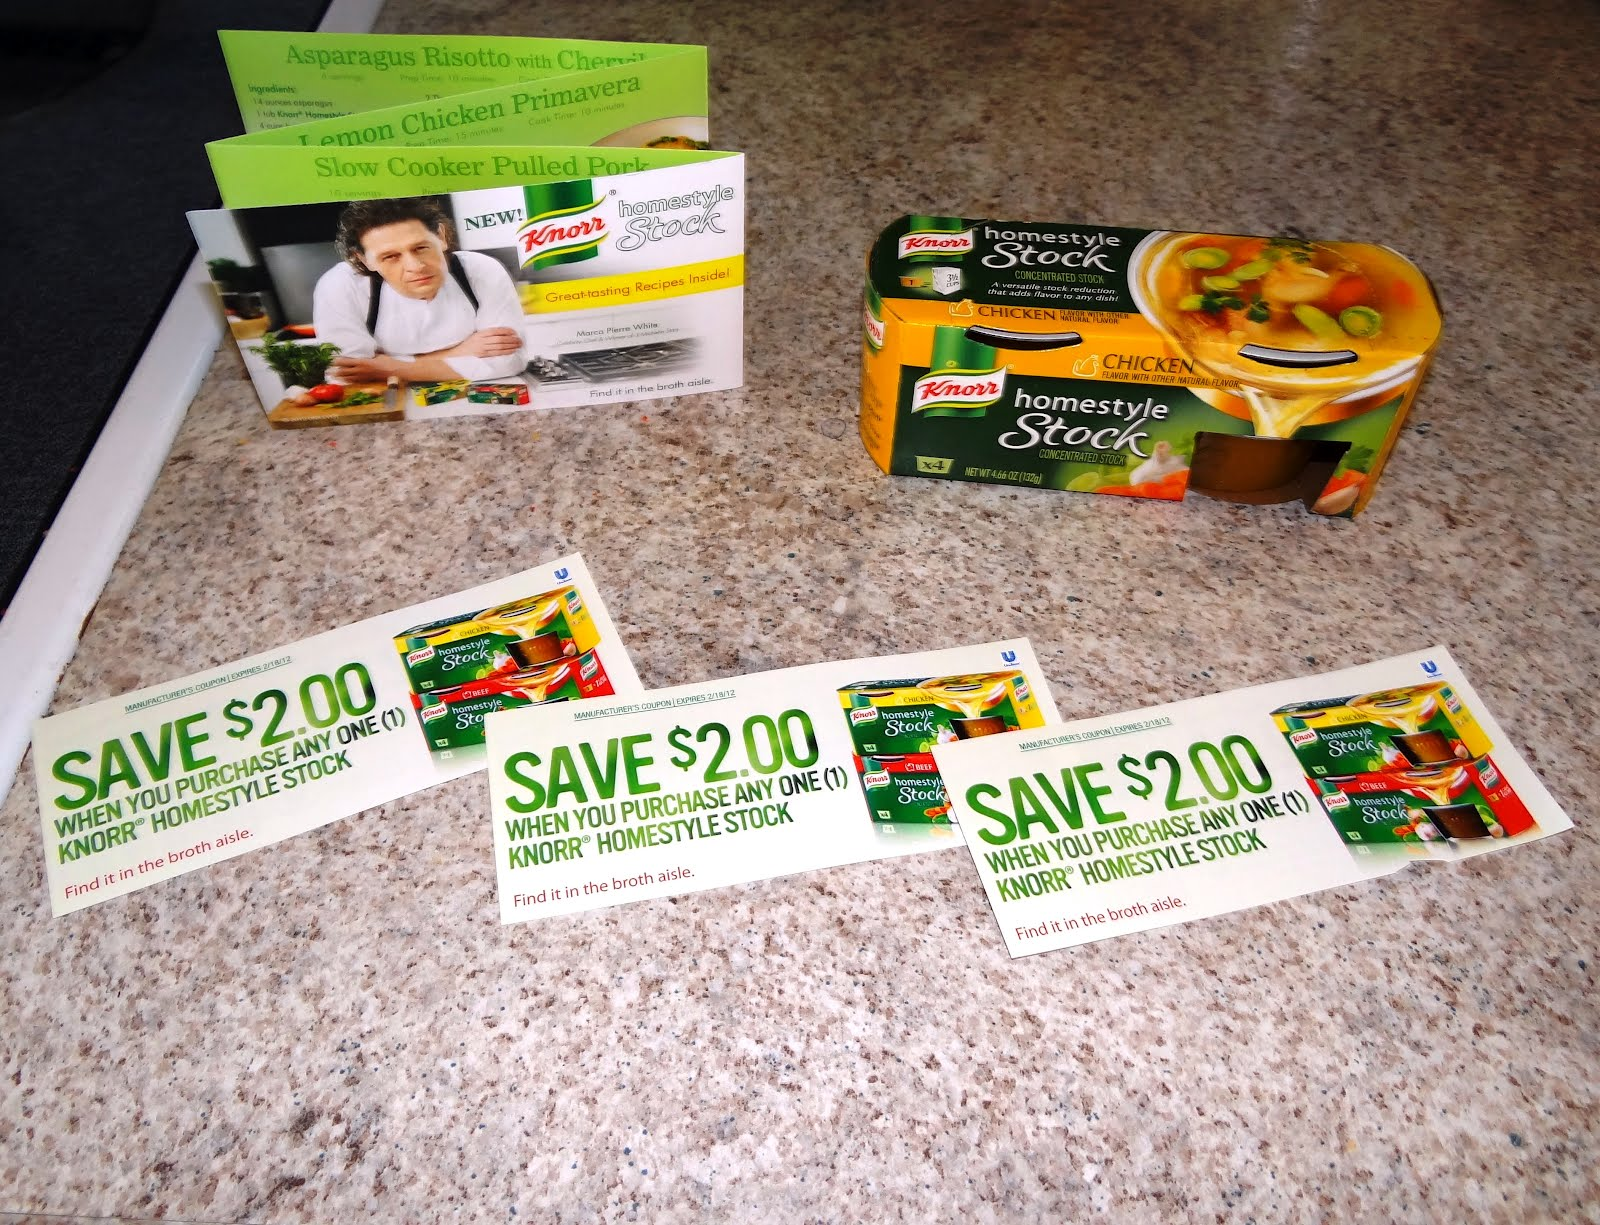 Knorr® Homestyle Stock Chicken Knorr Homestyle Stock